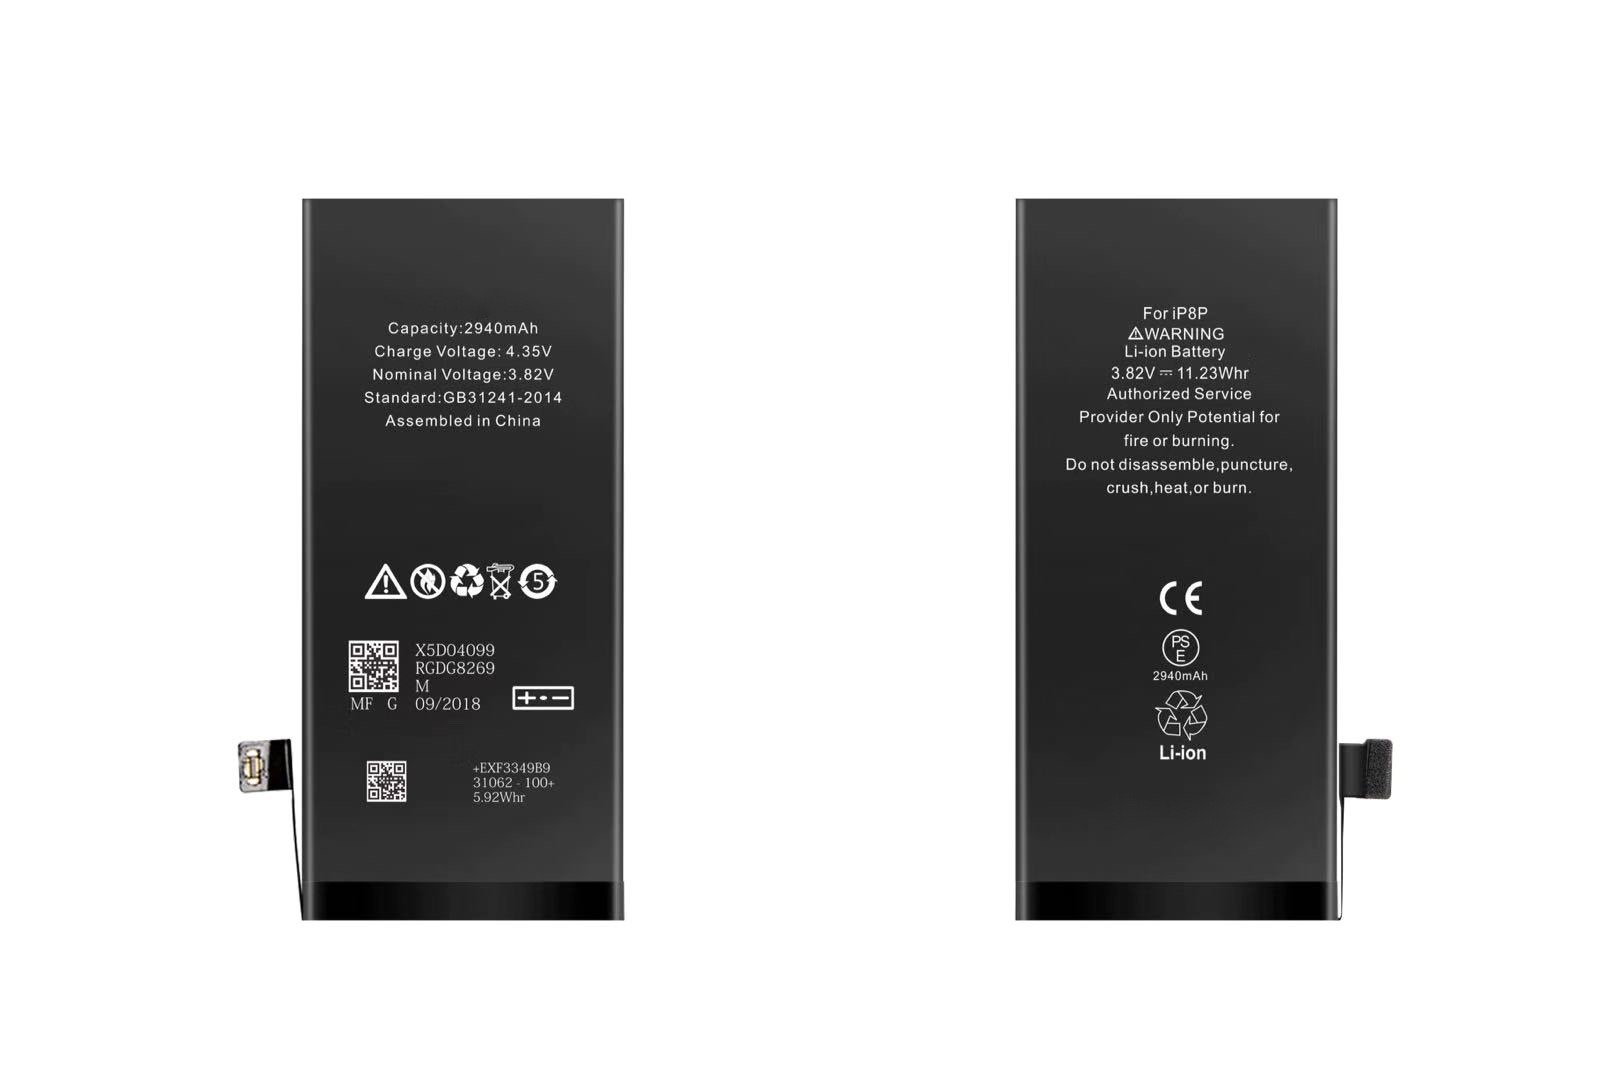 Batteria per iPhone 8 PLUS, 2990mAh, High Capacity